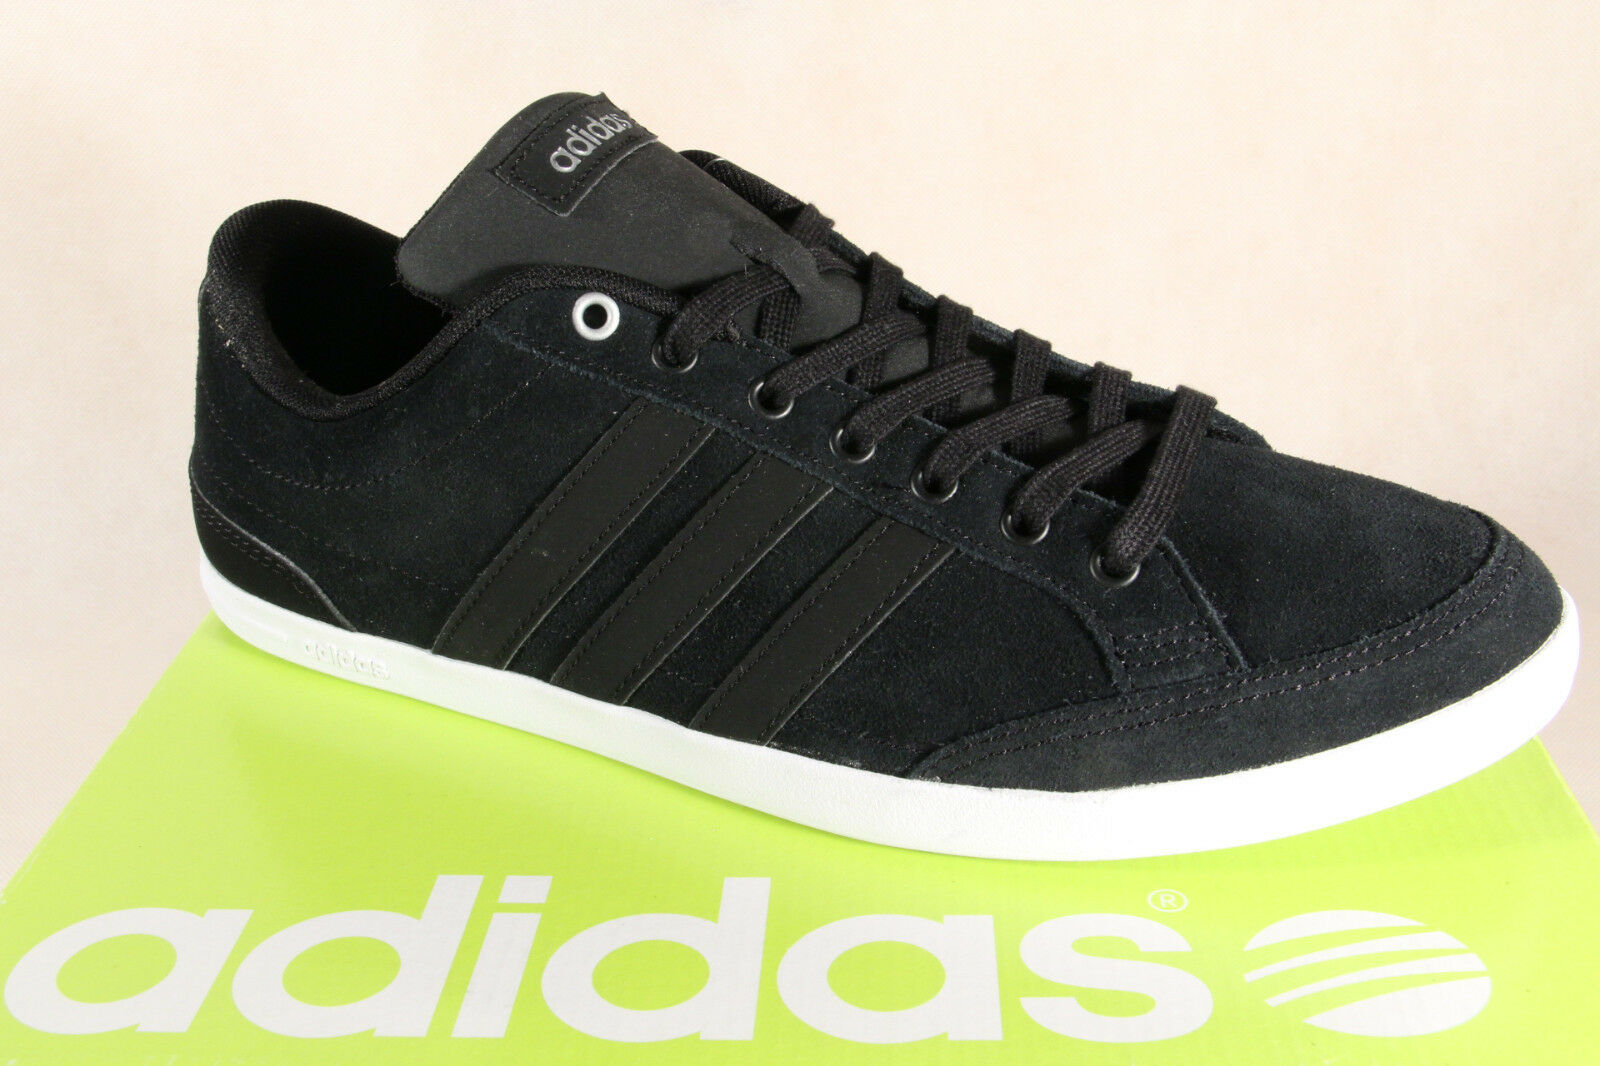 Adidas Lace Up Sneakers Low Shoes Trainers Caflaire Leather Black NEW